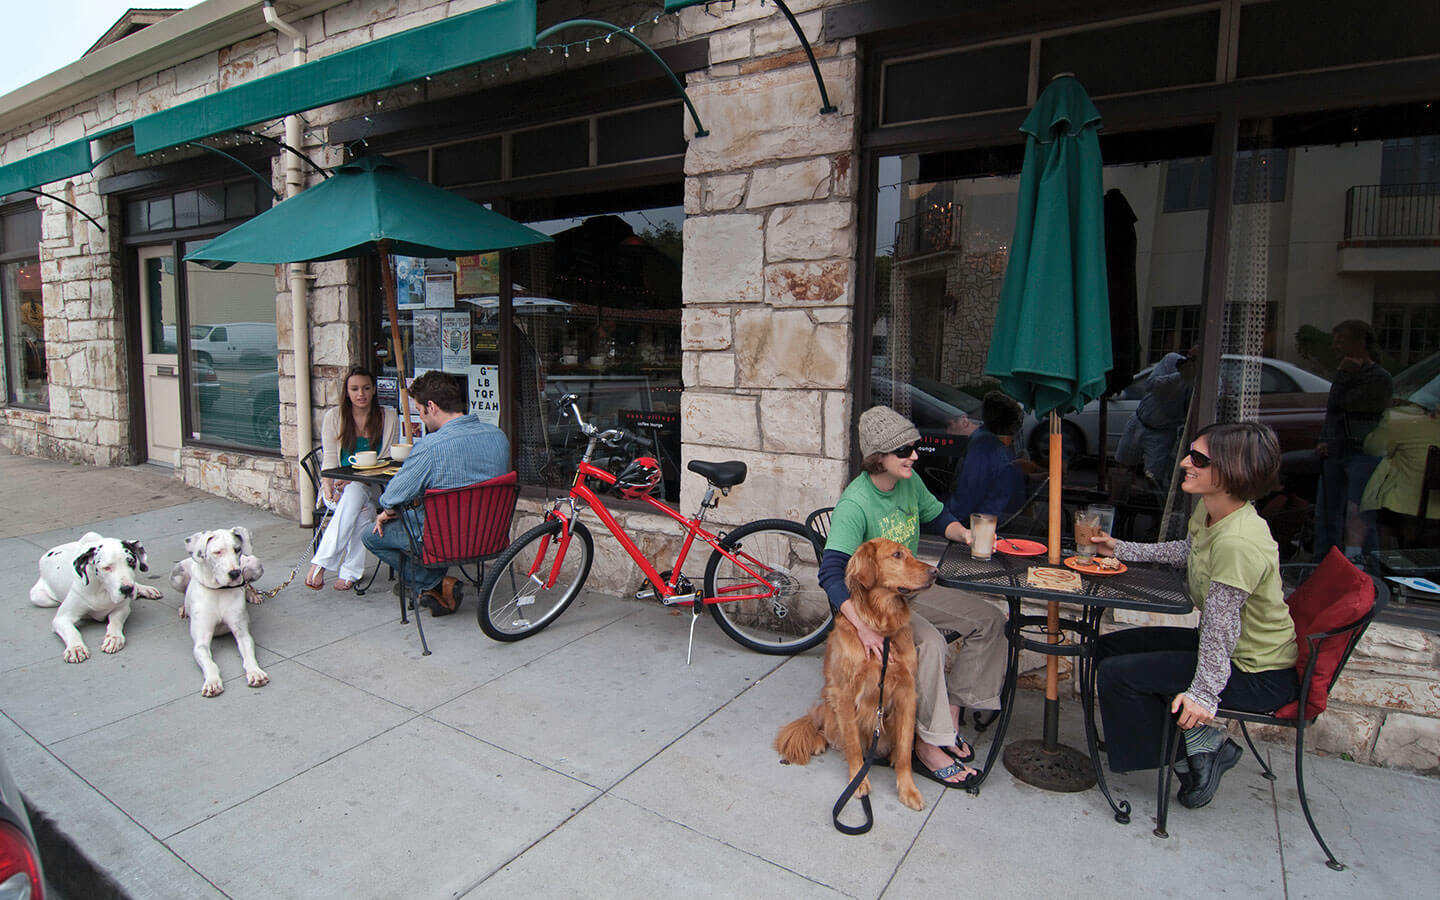 A charming pet-friendly restaurant in downtown Carmel, CA